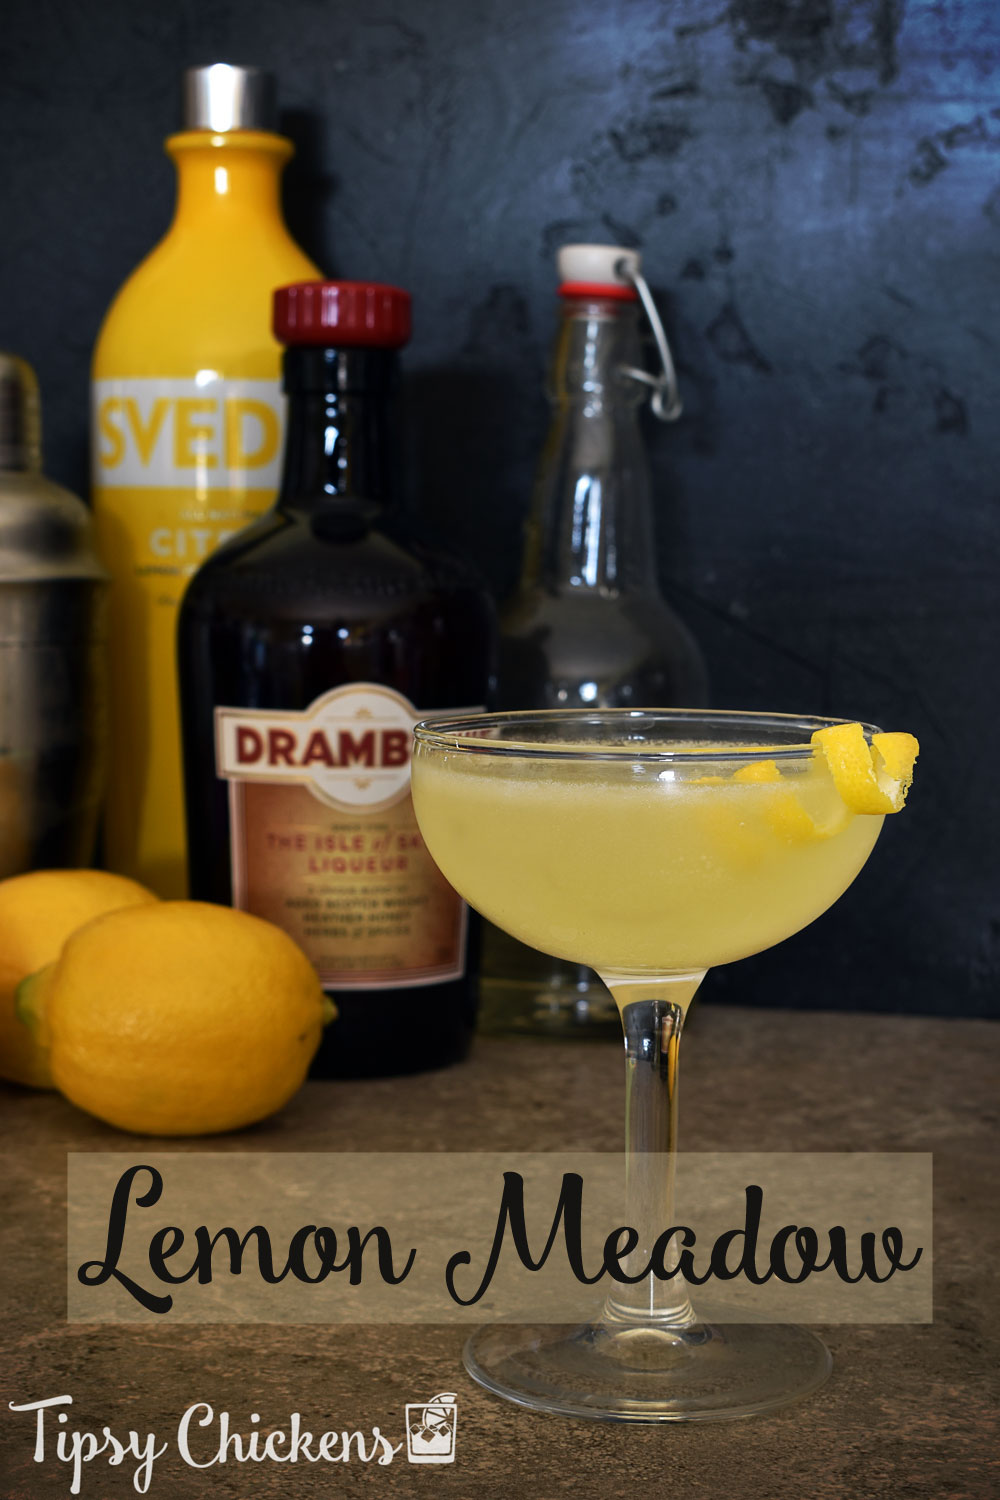 coupe glass with lemon meadow cocktail with lemon spiral garnish in foreground with citron lemon vodka, Drambuie, lemons, simple syrup in a flip top bottle and a silver cocktail shaker in the background